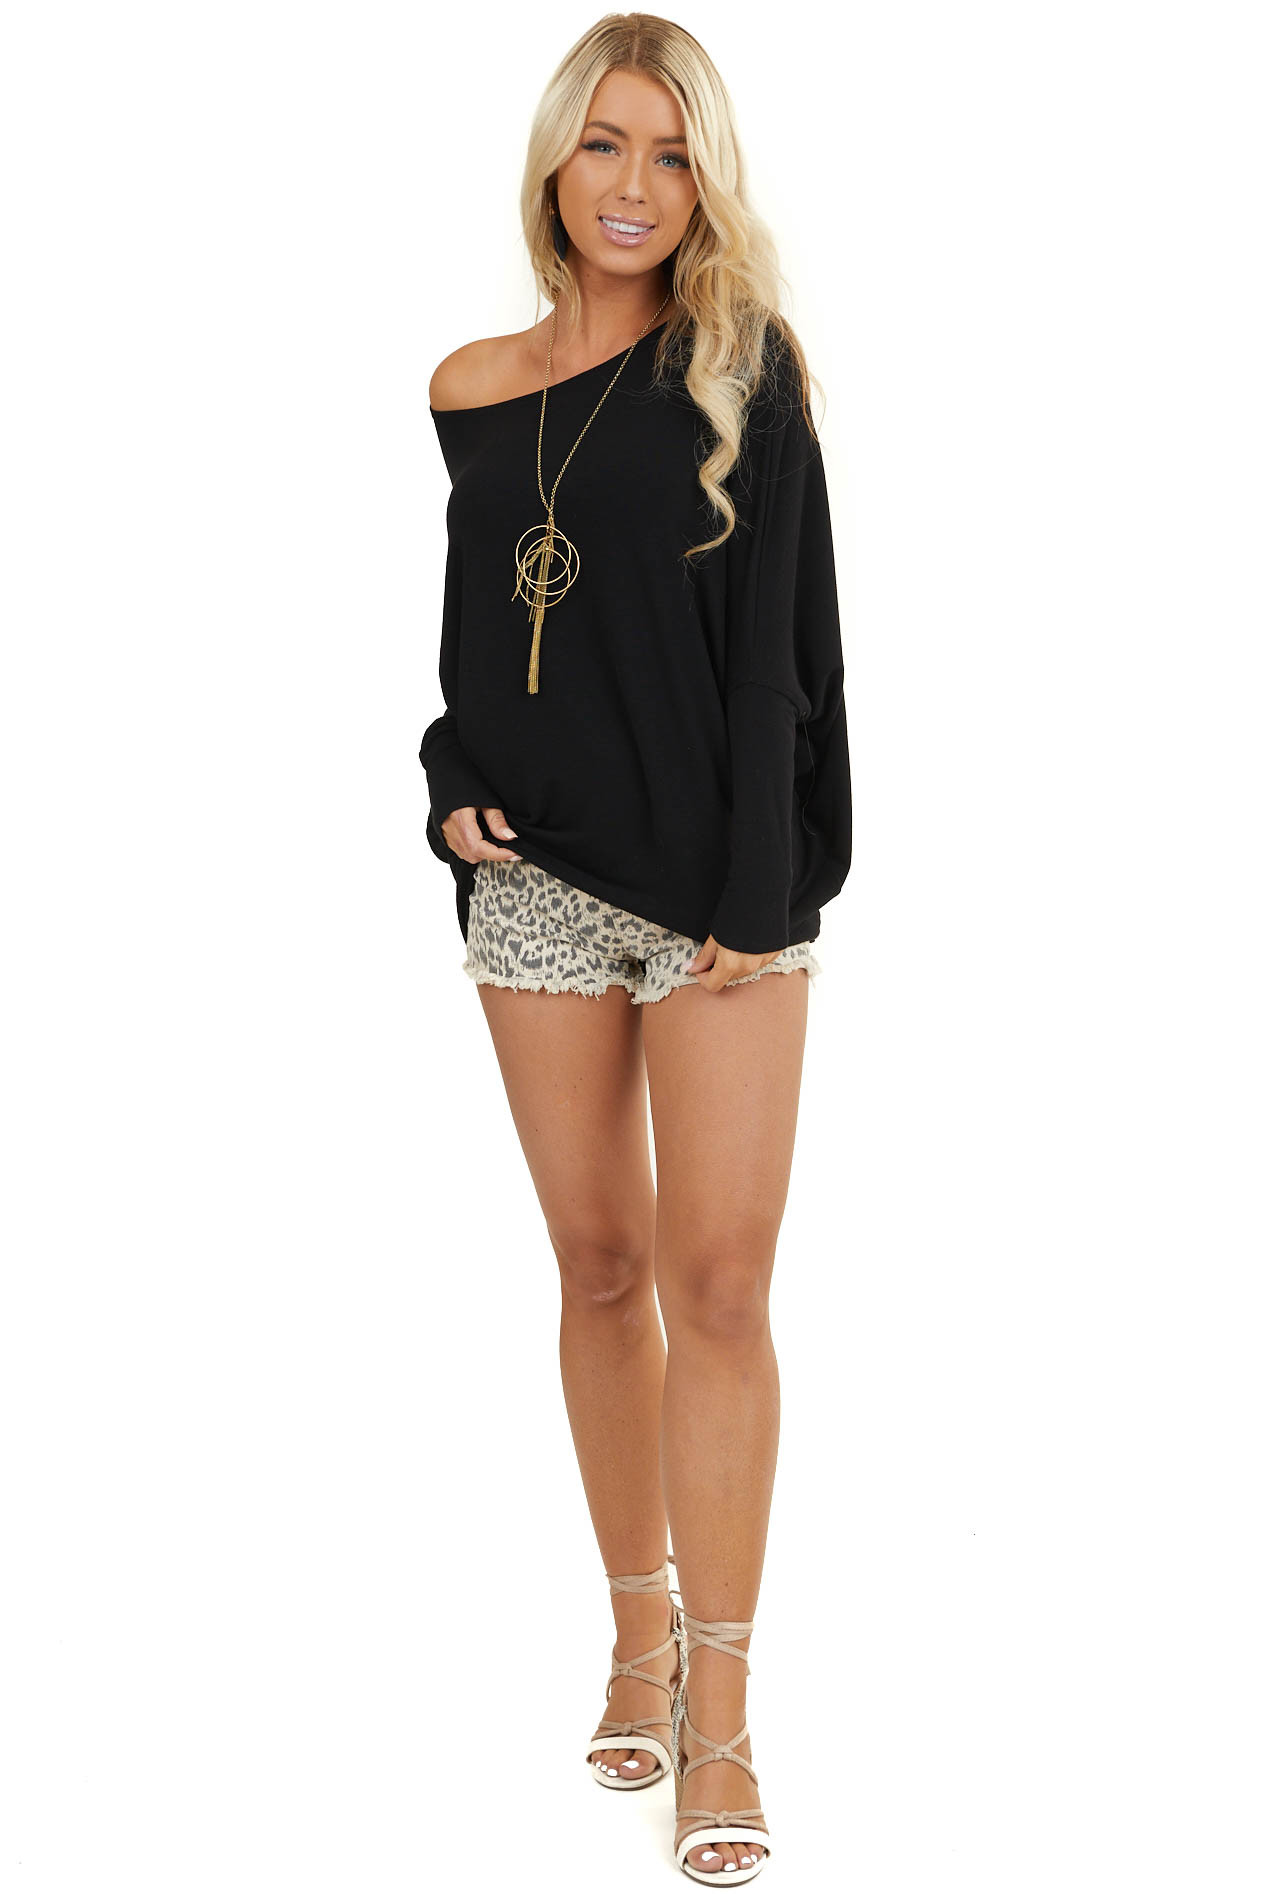 Midnight Black Round Neck Top with Long Dolman Sleeves